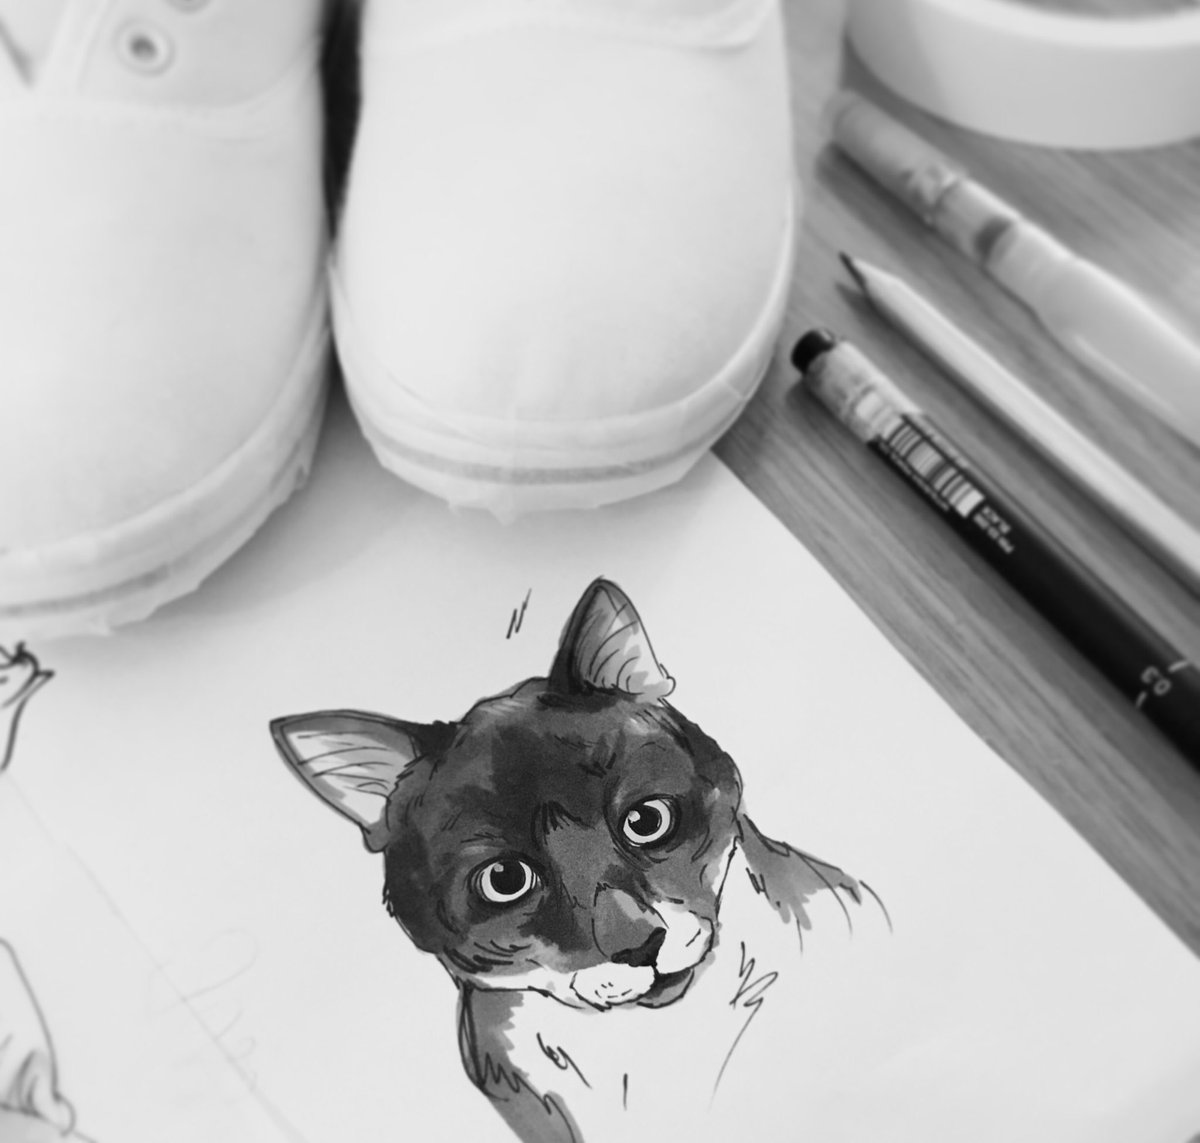 It's Caturday, so we know what that means.... #caturday #petportrait #wip #handmade #cats #shoeart #etsyseller #crafturday #OnlineCraft<br>http://pic.twitter.com/TjOCNgi0oy